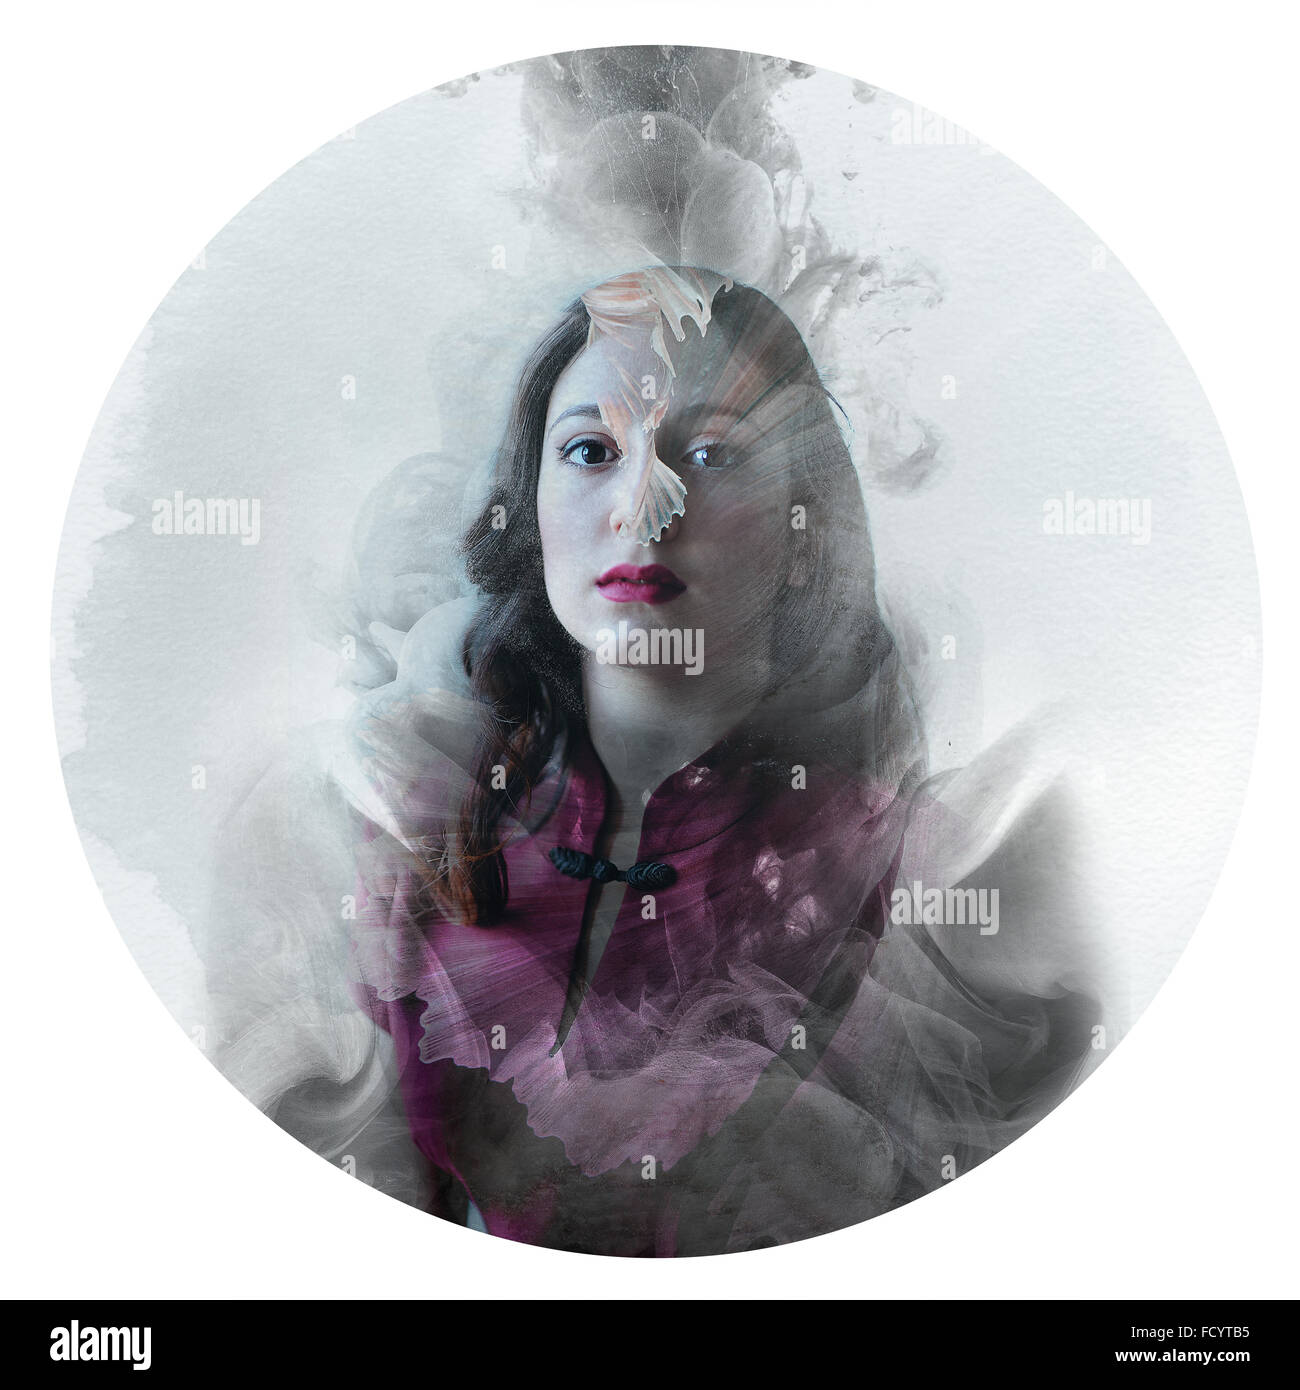 Artistic illustration, vintage circle photo multi exposure manipulation - fantasy dreamy magic princess concept - Stock Image